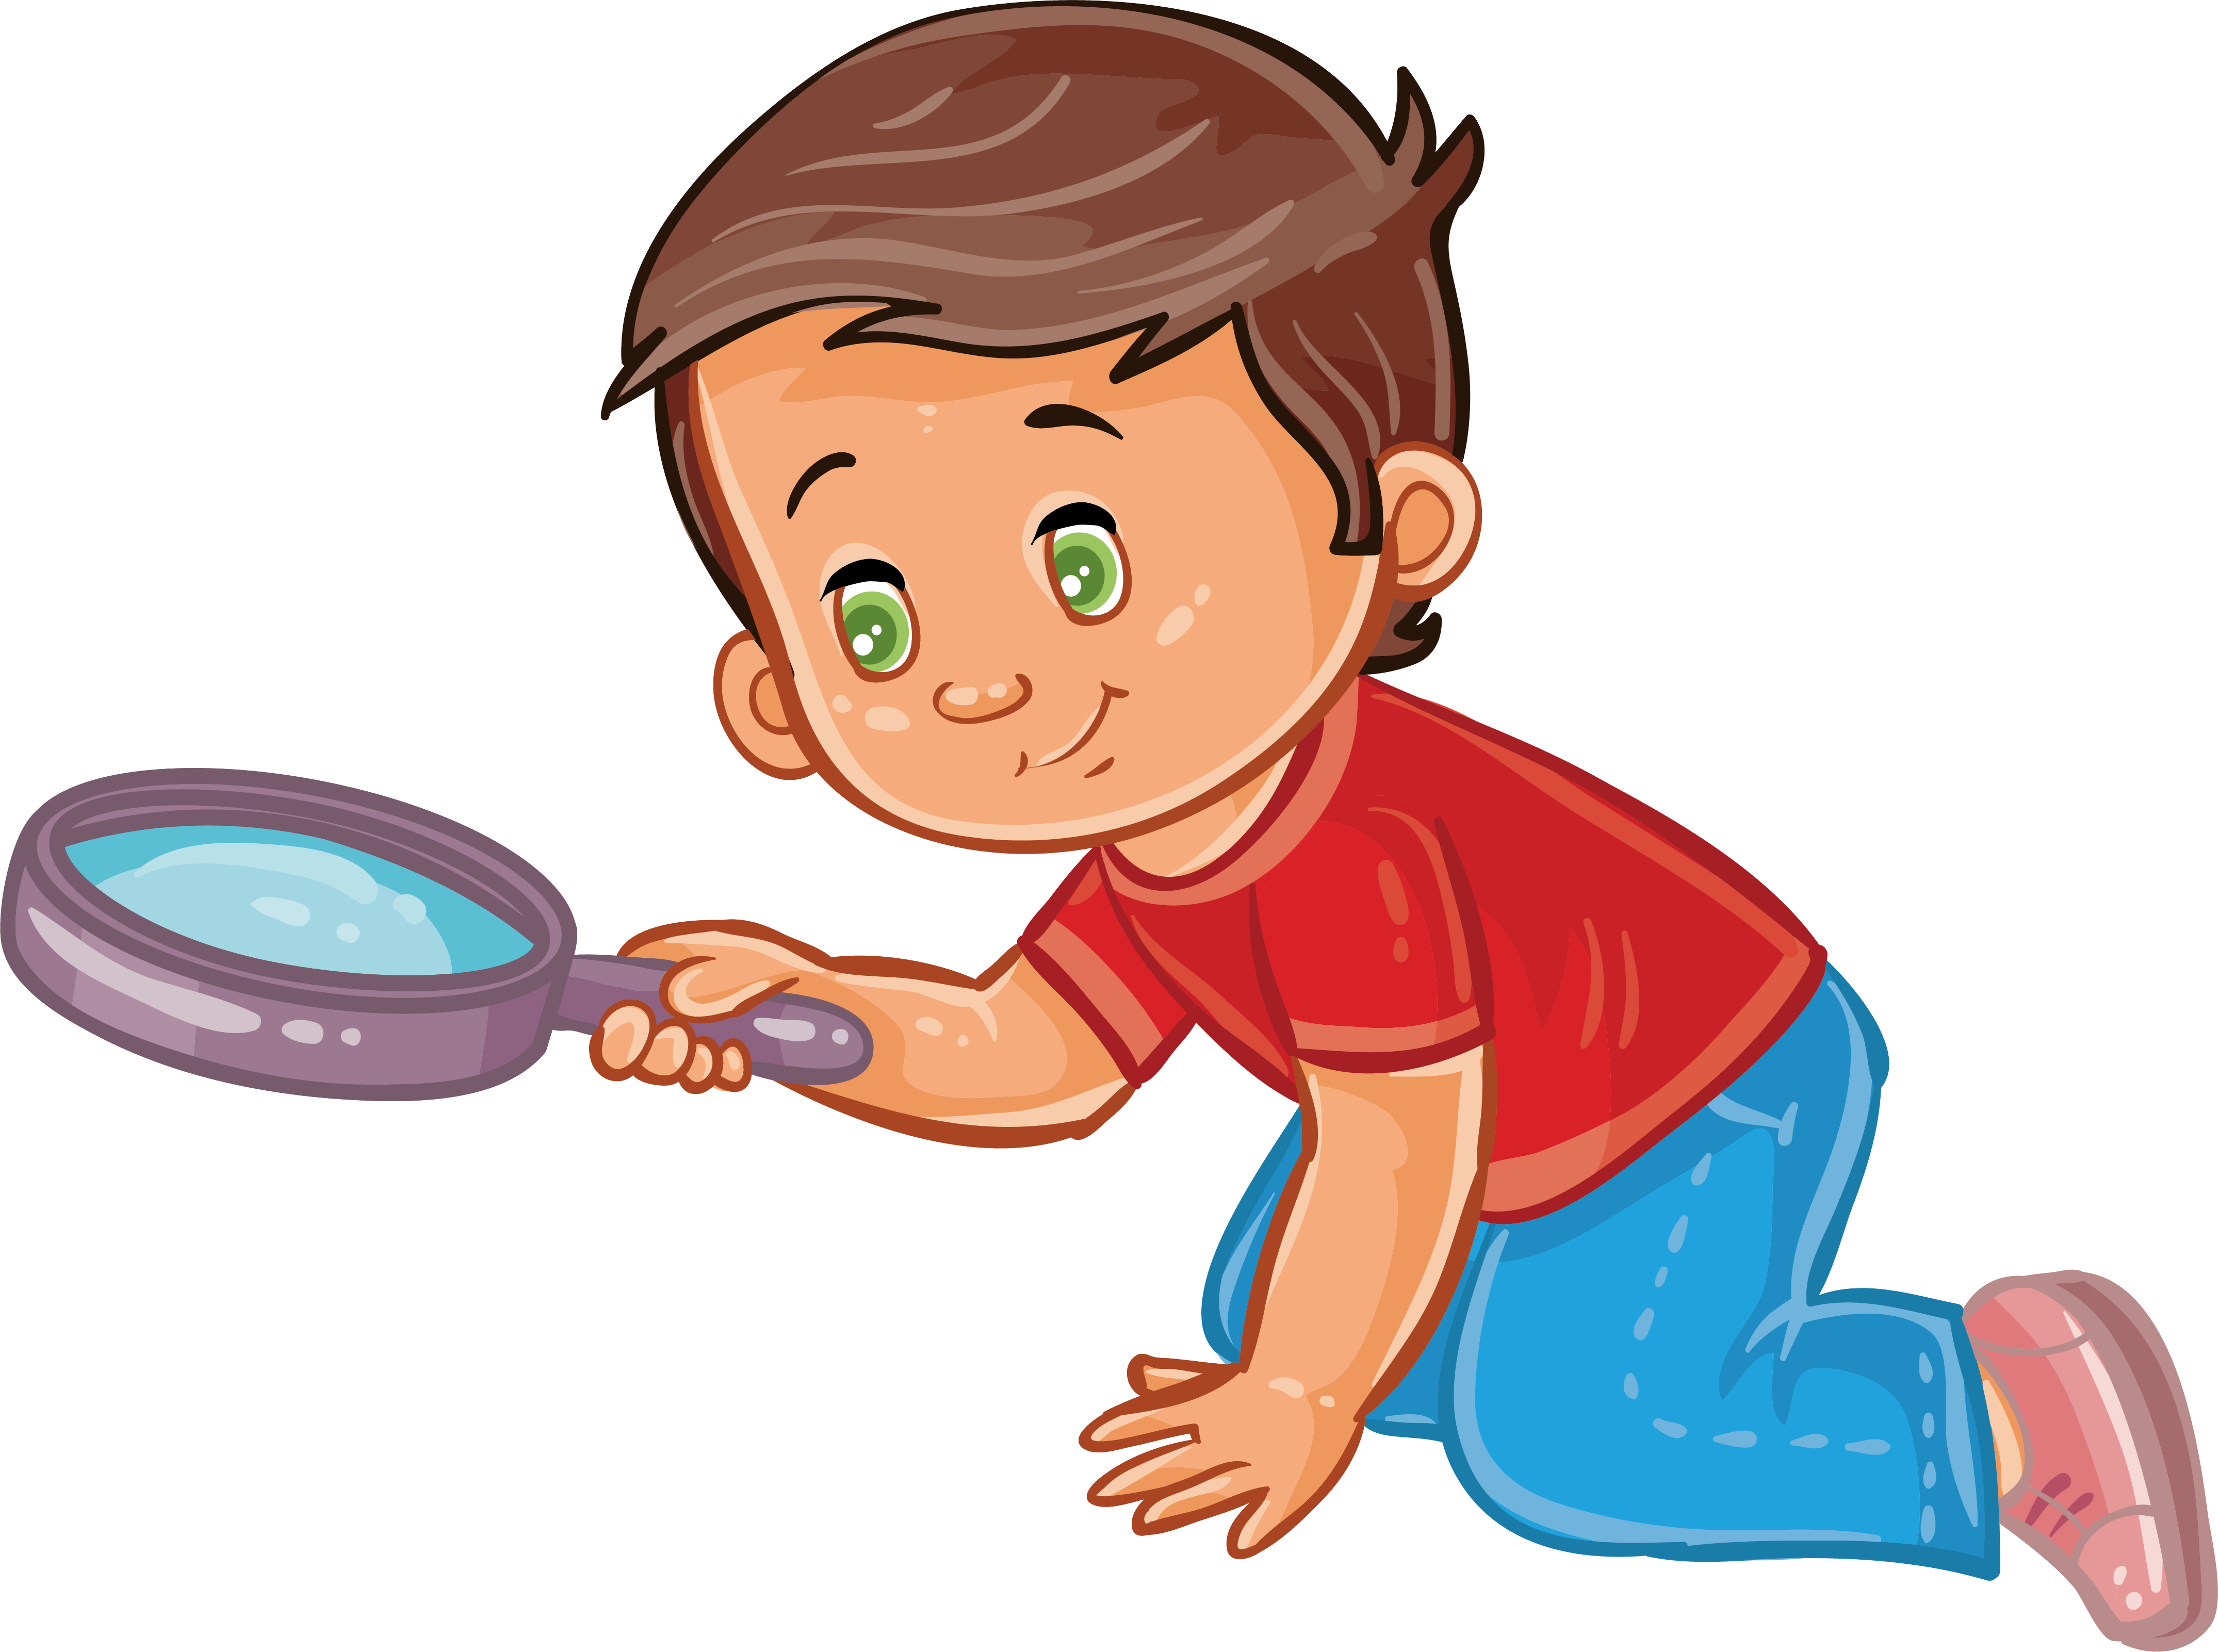 Kind clipart childrens. Boy magnifying glass child